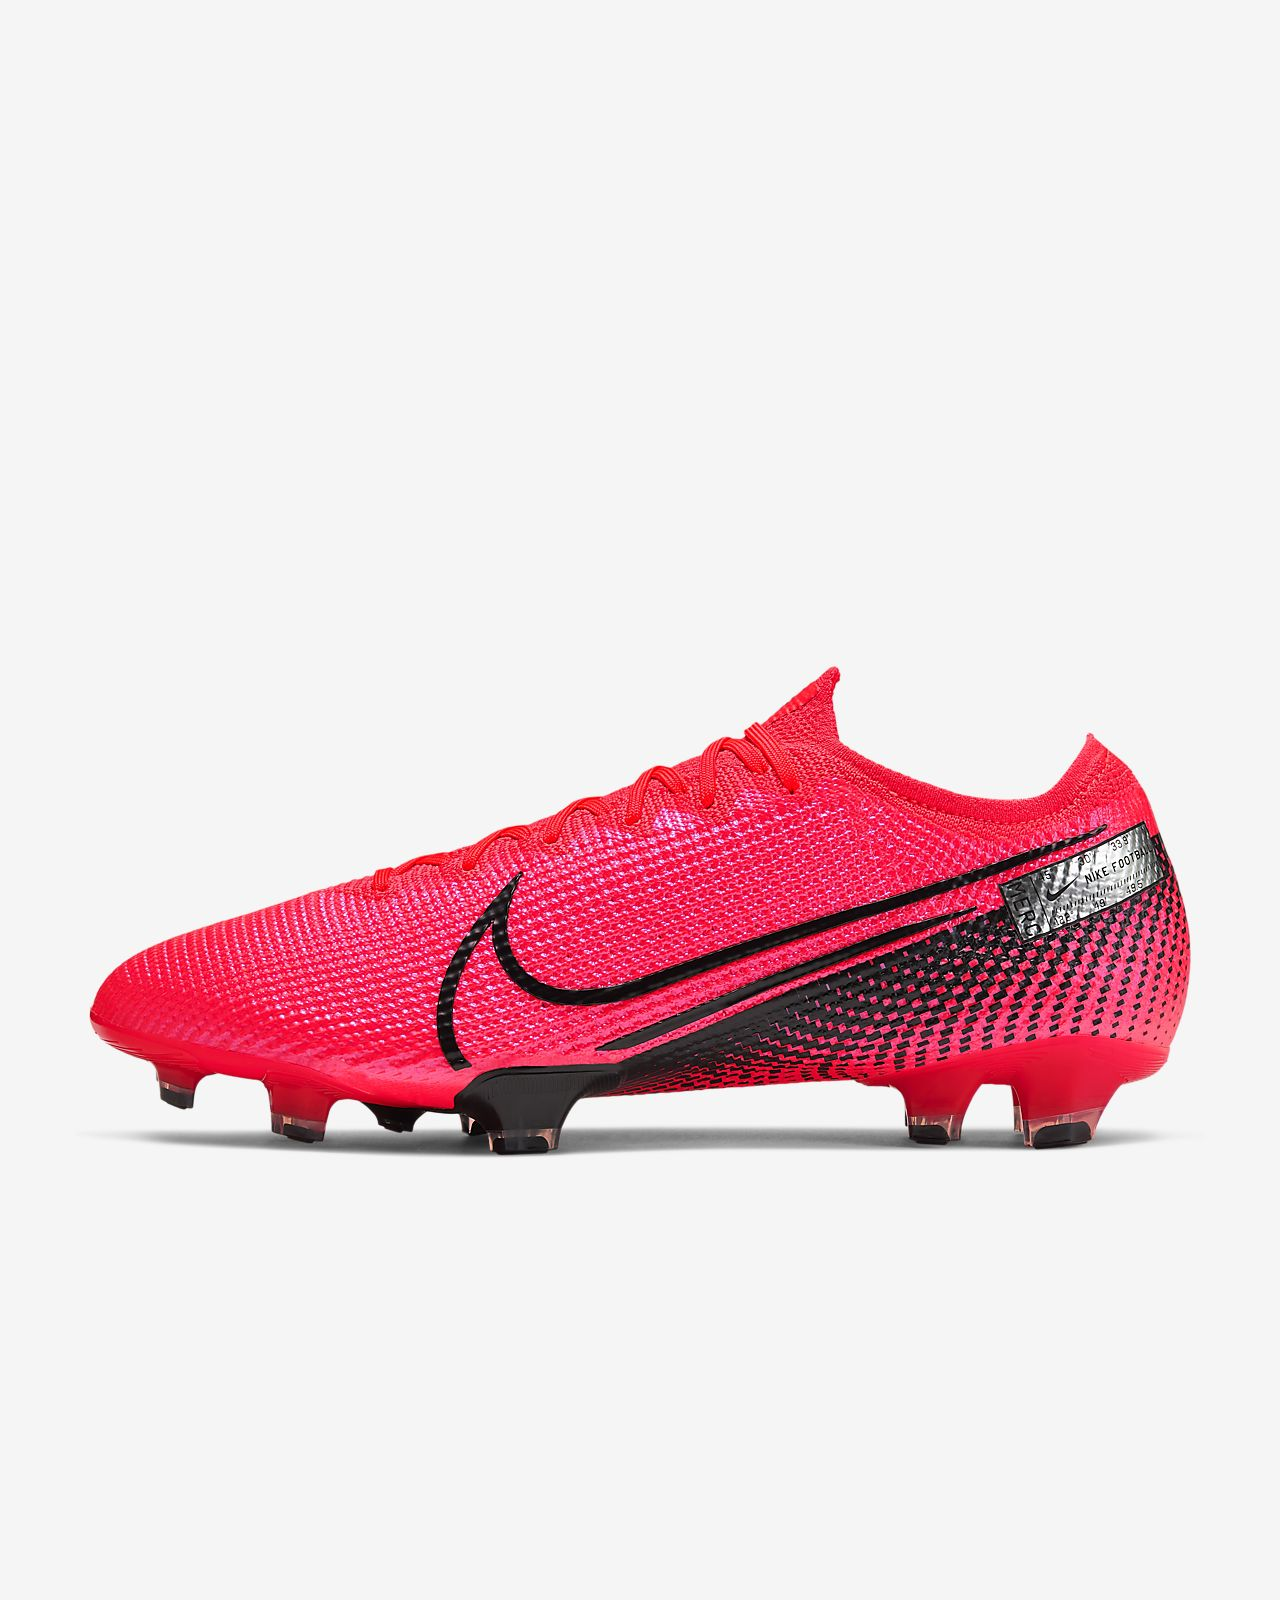 Nike Mercurial Vapor 13 Elite FG Firm-Ground Soccer Cleat